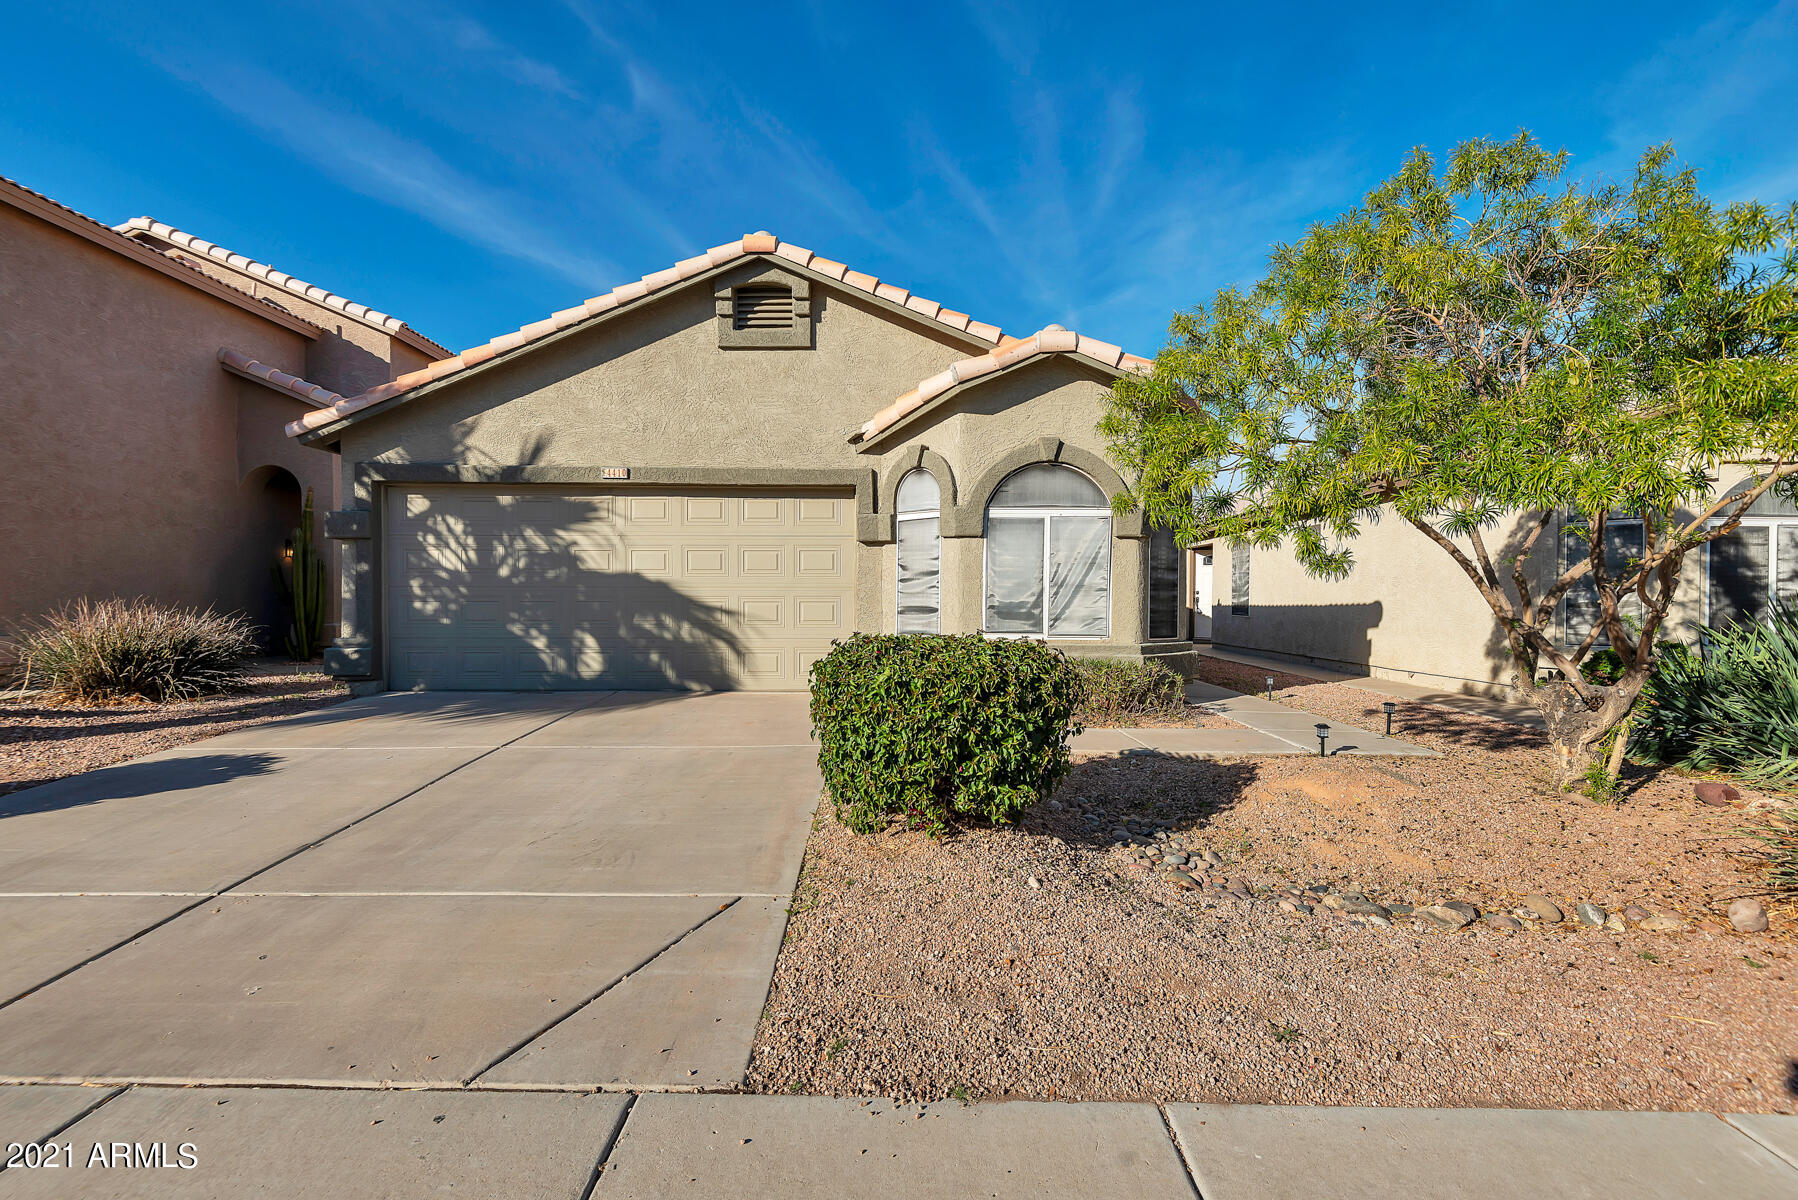 4410 E WINDSONG Drive, Phoenix, AZ 85048, 4 Bedrooms Bedrooms, ,Residential Lease,For Rent,4410 E WINDSONG Drive,6194070